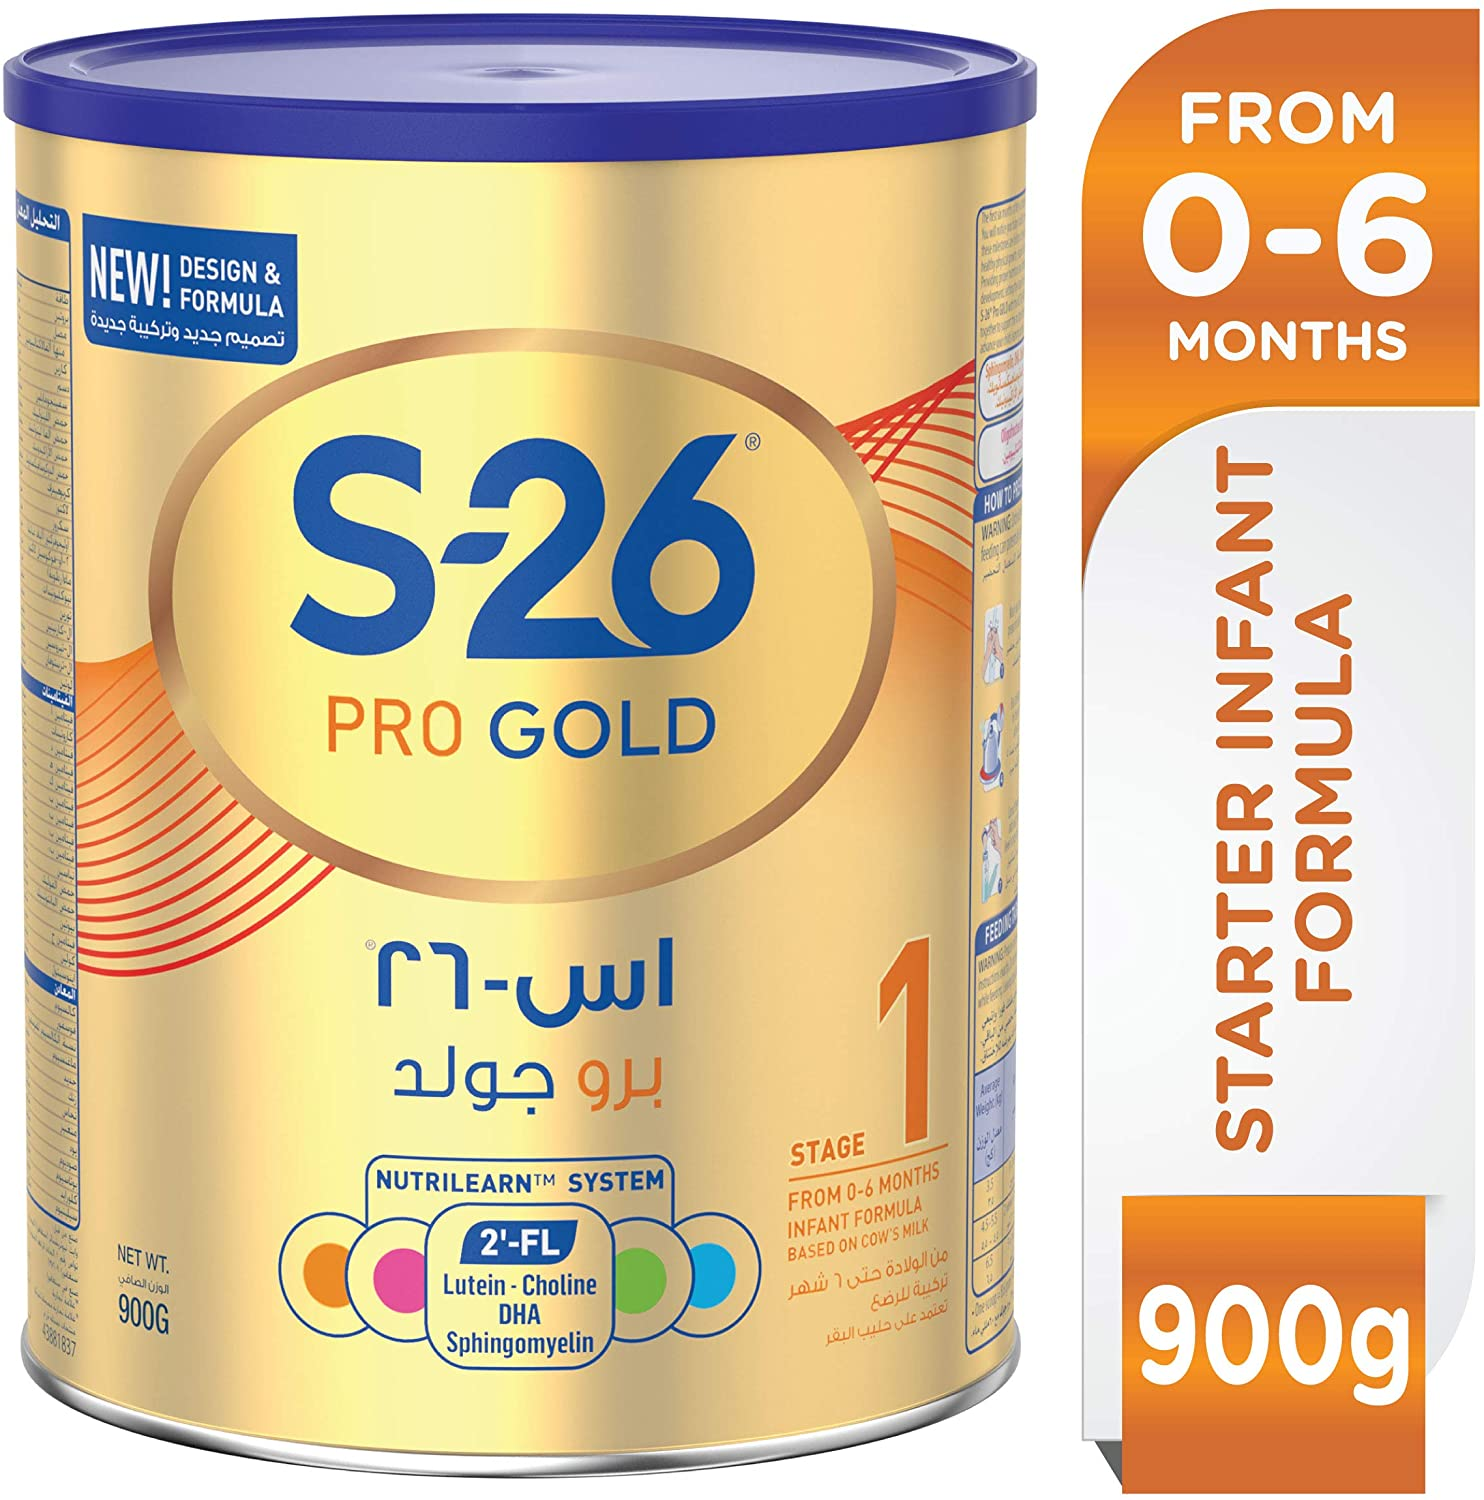 WYETH NUTRITION S26® PRO GOLD Stage 1, 0-6 Months Premium Starter Infant Formula for Babies Tin 900g with Biofactors System